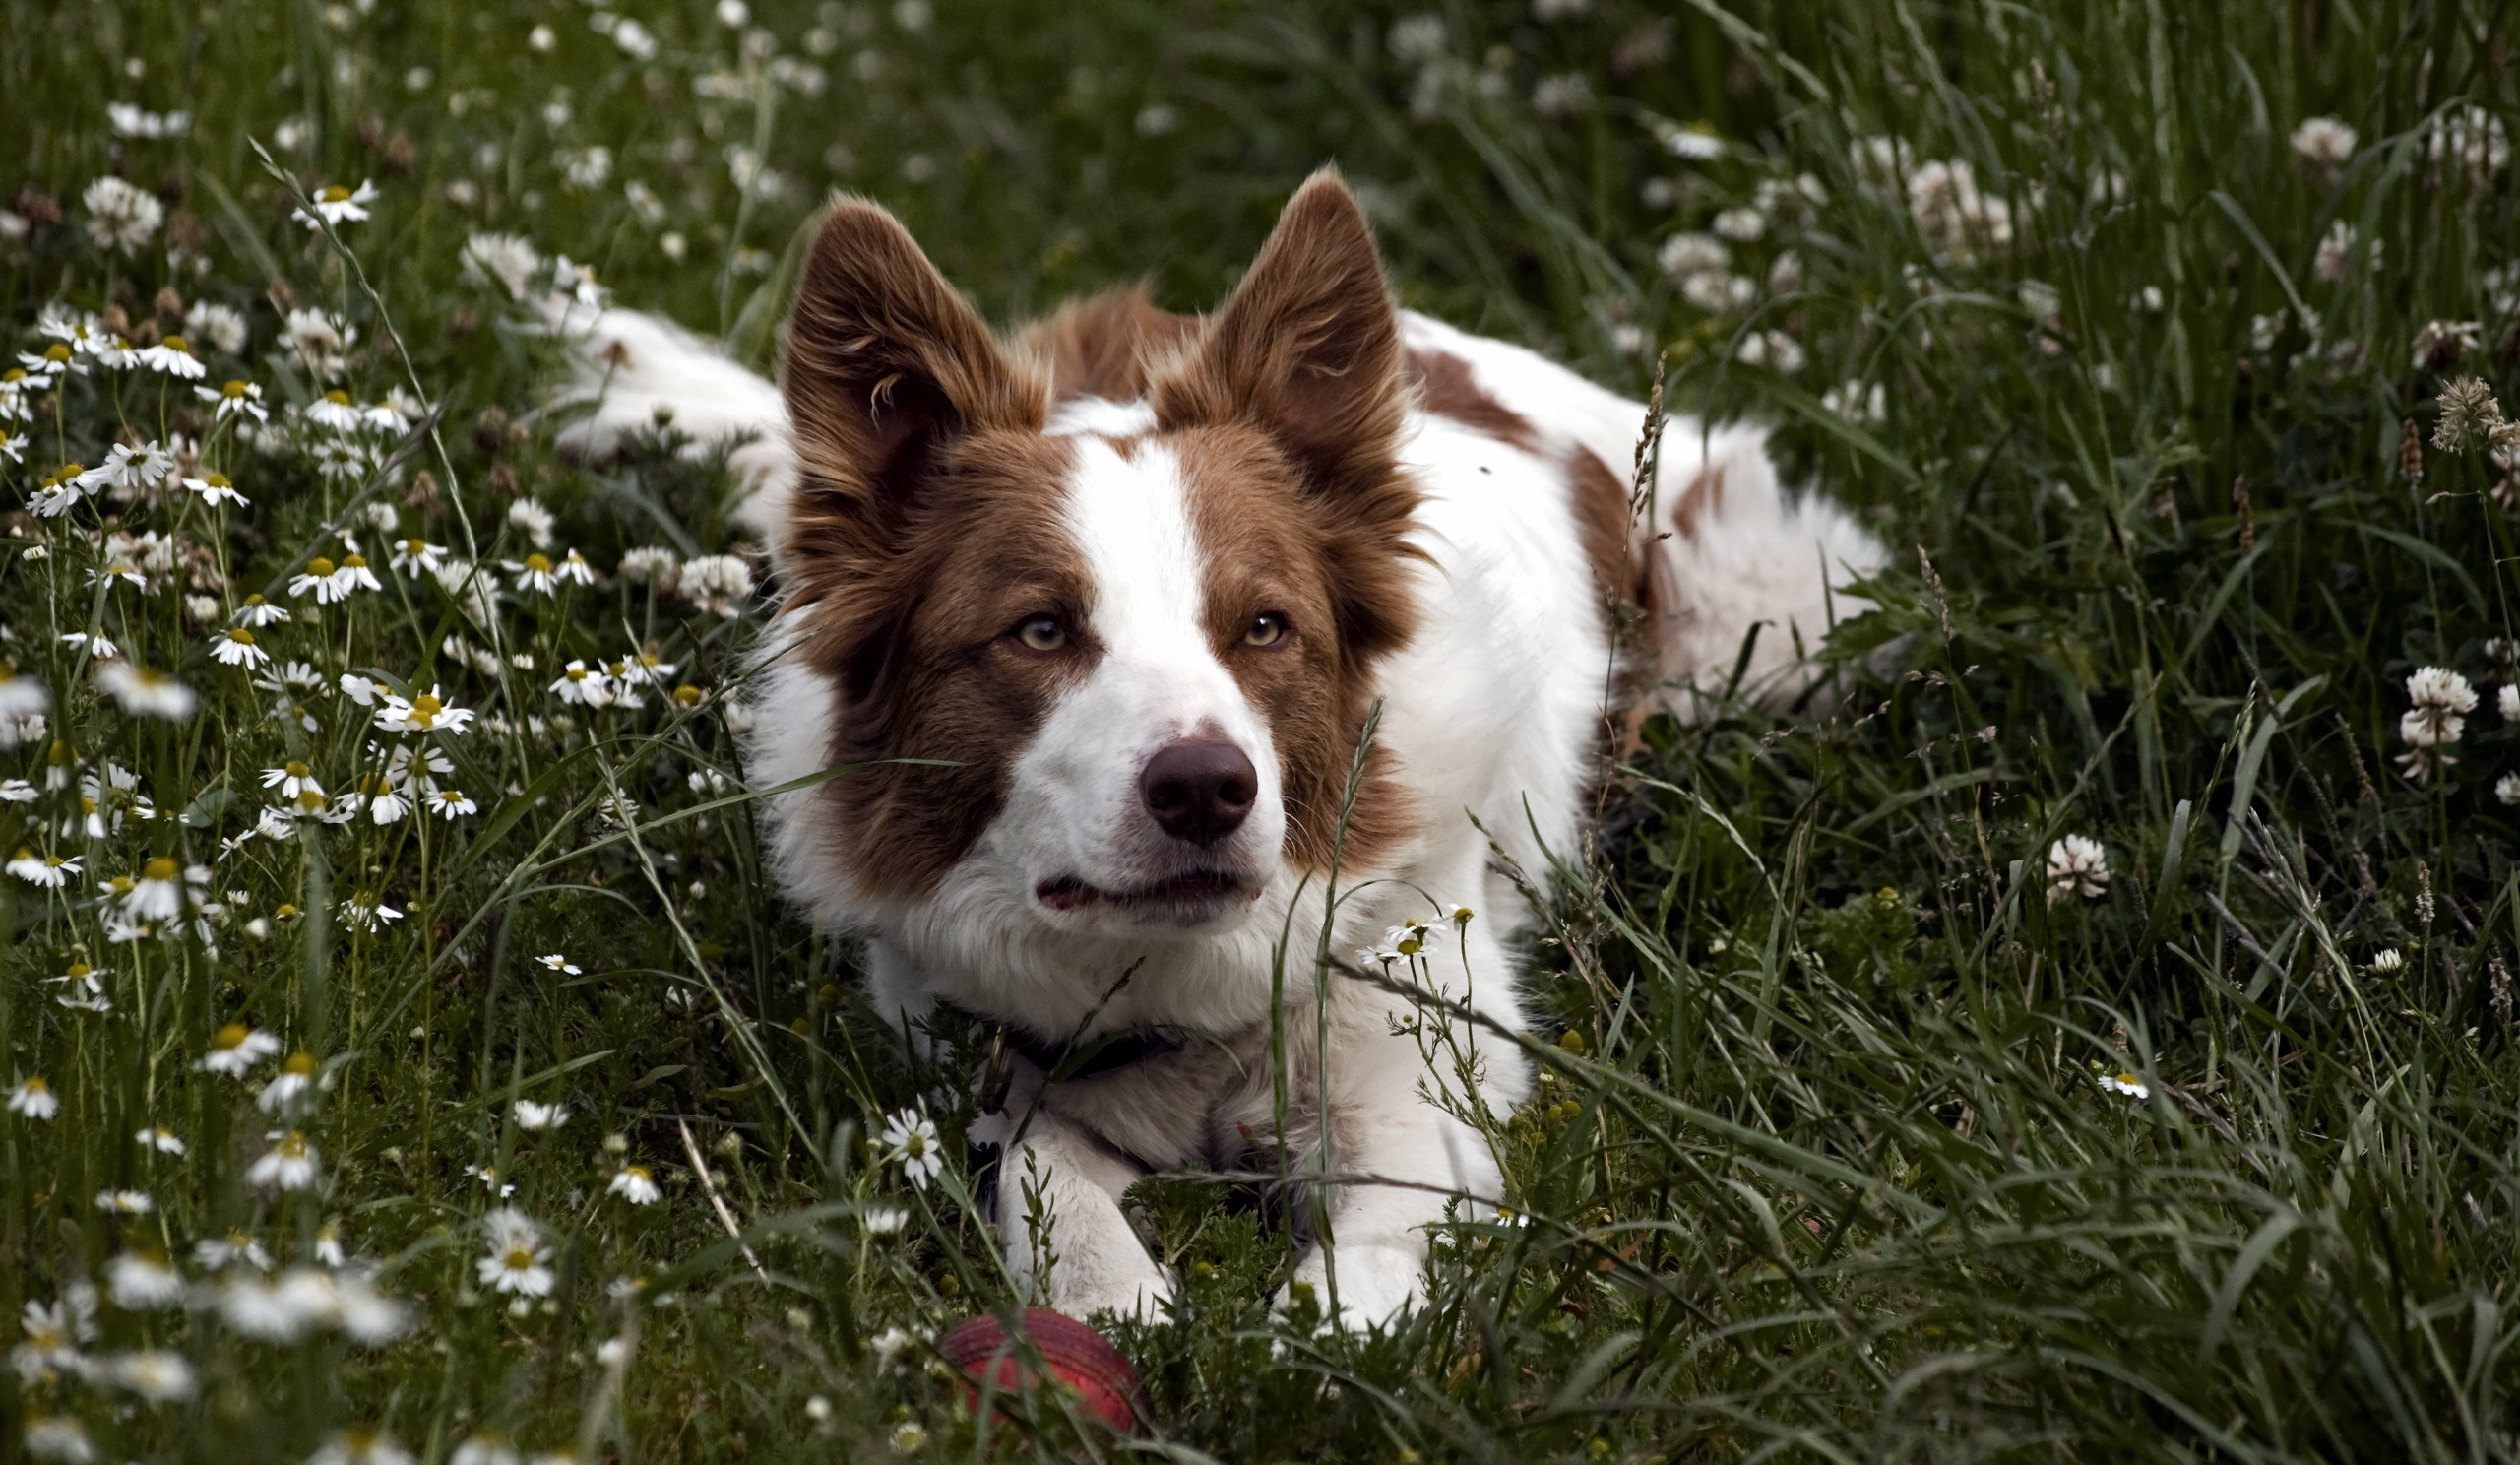 150466 download wallpaper Animals, Dog, Grass, To Lie Down, Lie, Spotted, Spotty screensavers and pictures for free